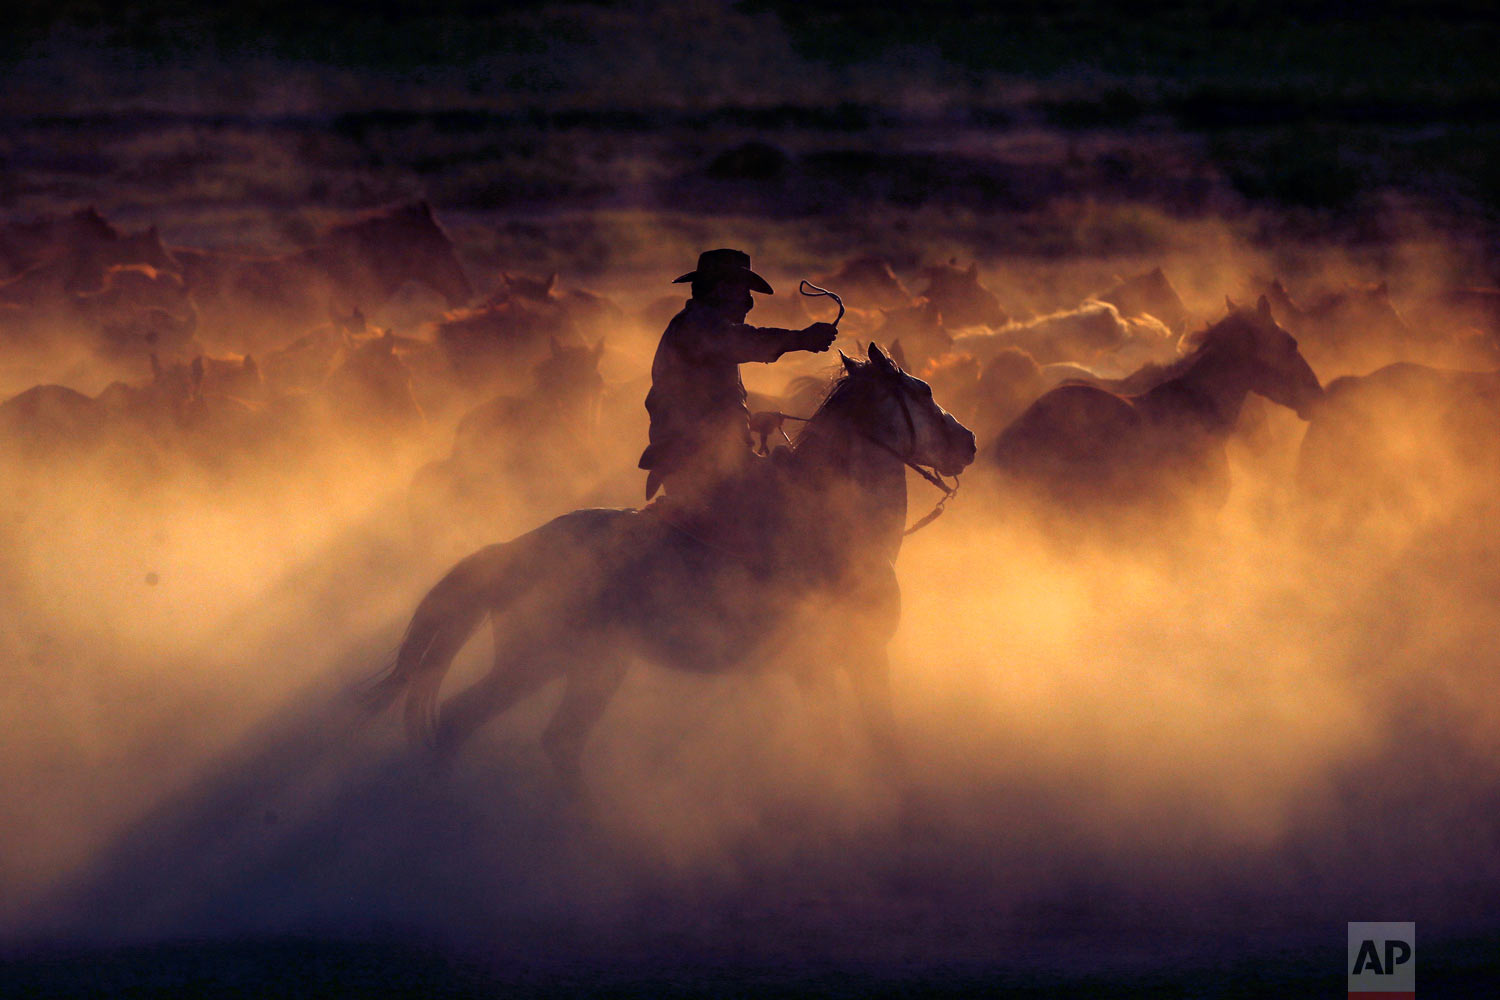 """Ali Kemer, a 50-year-old horse-breeder, herds horses in the village of Hormetci, on the foothill of Mount Erciyes, in the central Anatolian province of Kayseri, Turkey on Sunday, Aug. 5, 2018. Kemer is a third-generation horse breeder in the village where the residents have a special affinity with the """"yilki,"""" as the untamed horses are called. He cares for about 350 of them and charges visitors 50 Turkish lira (US $8) to photograph the horses, money he says he uses for their upkeep. Thousands of other wild horses roam free on the mountains and plains of Turkey's Anatolia region, the descendants of horses that were abandoned by farmers. (AP Photo/Emrah Gurel)"""